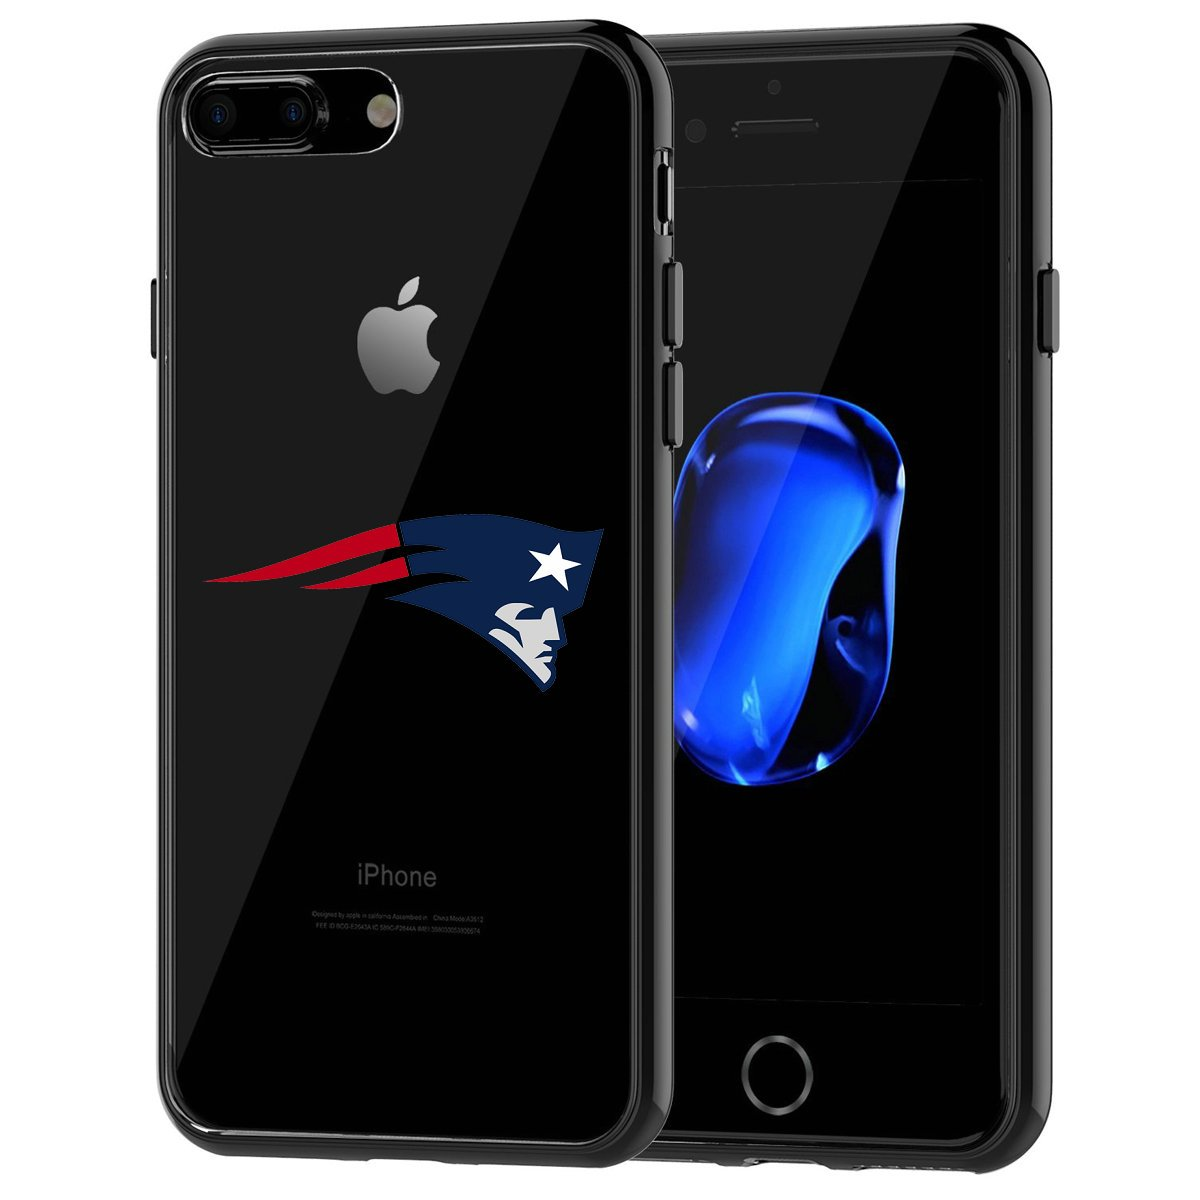 iPhone 7 Plus Tough Case, Shock Absorption TPU + Translucent Frosted Anti-Scratch Hard Backplate Back Cover for iPhone 7 Plus- Black DesignerCases